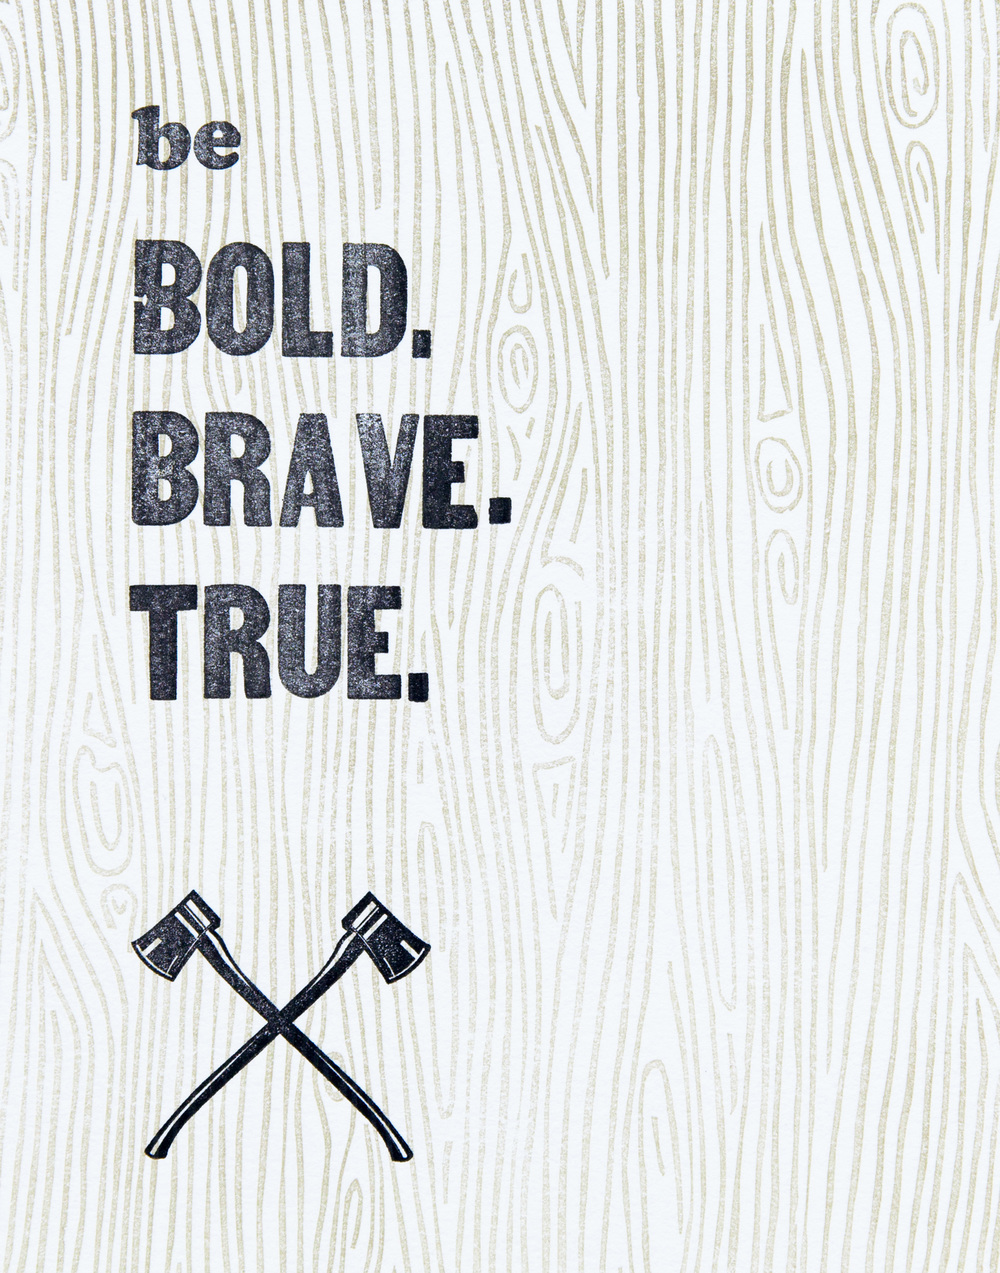 be_bold_brave_true_woodgrain_print.jpg